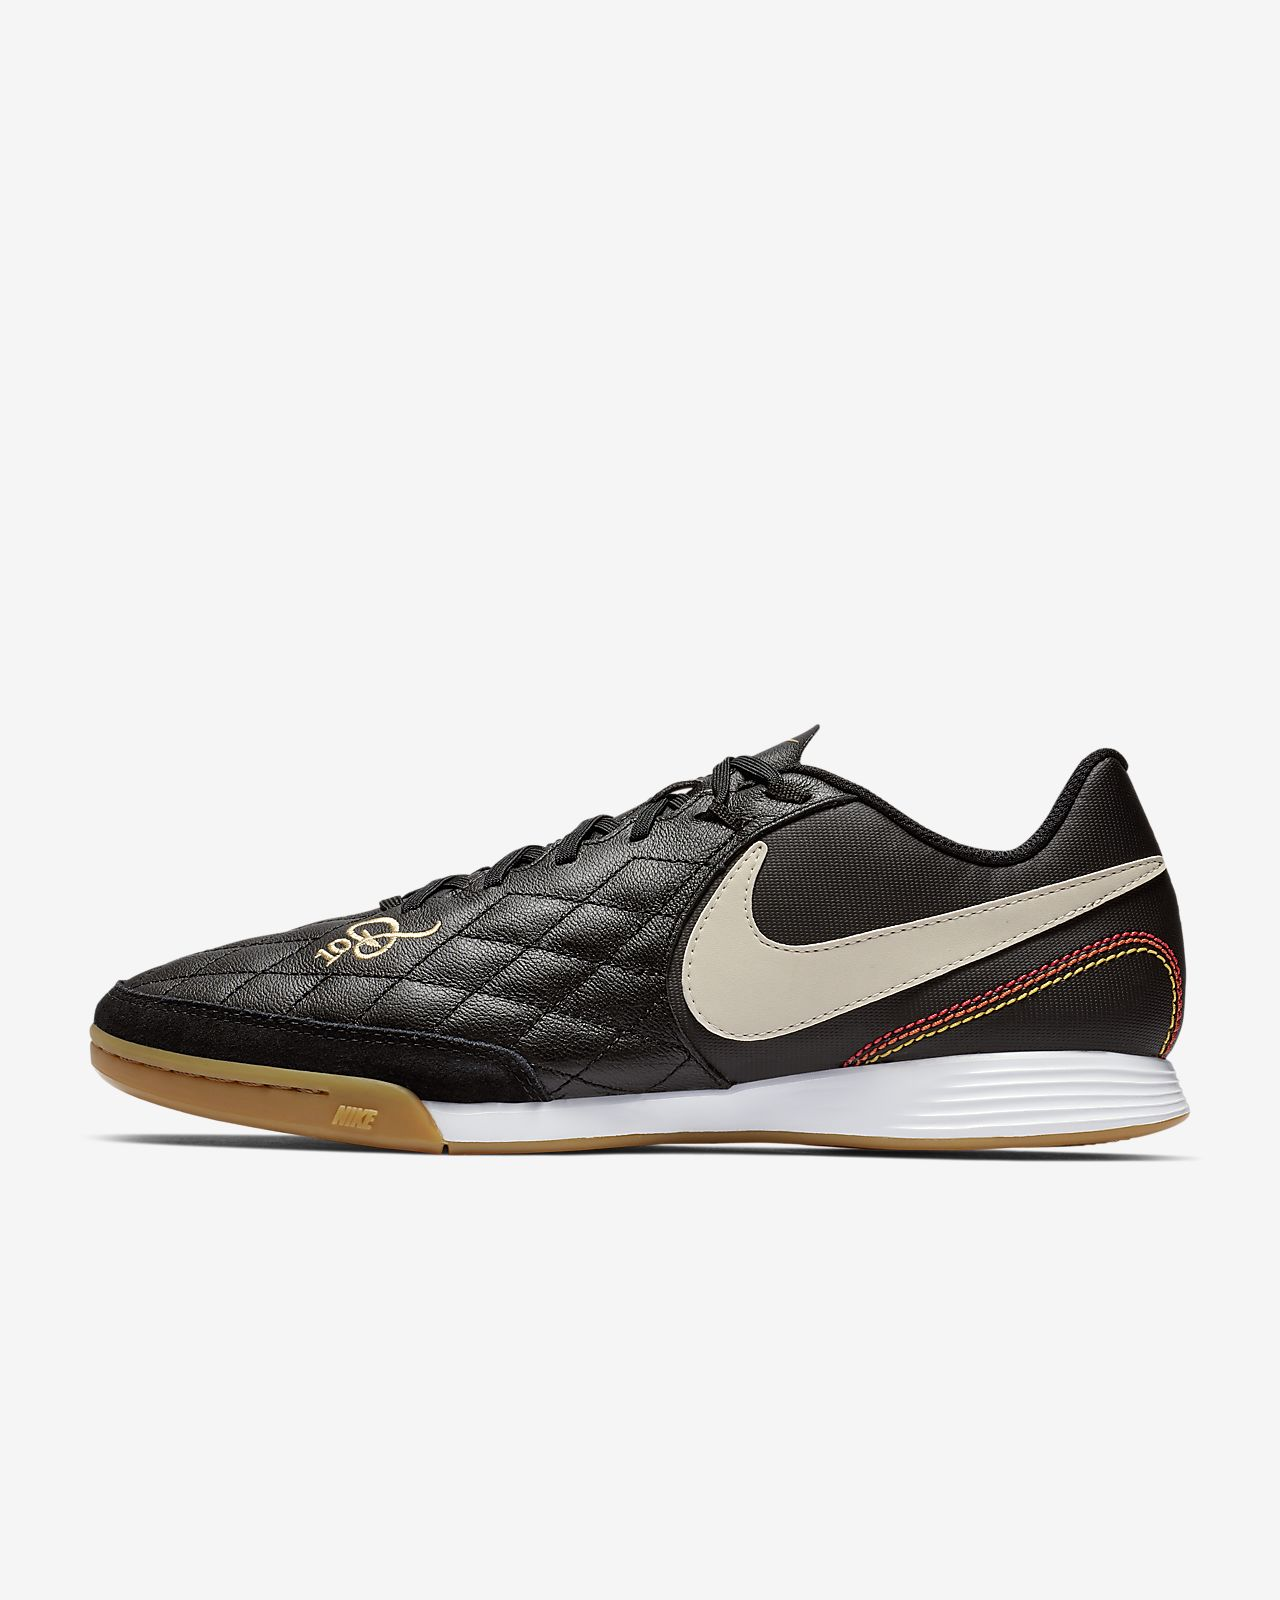 info for 098df 953a2 Indoor Court Football Shoe. Nike TiempoX Legend VII Academy 10R IC